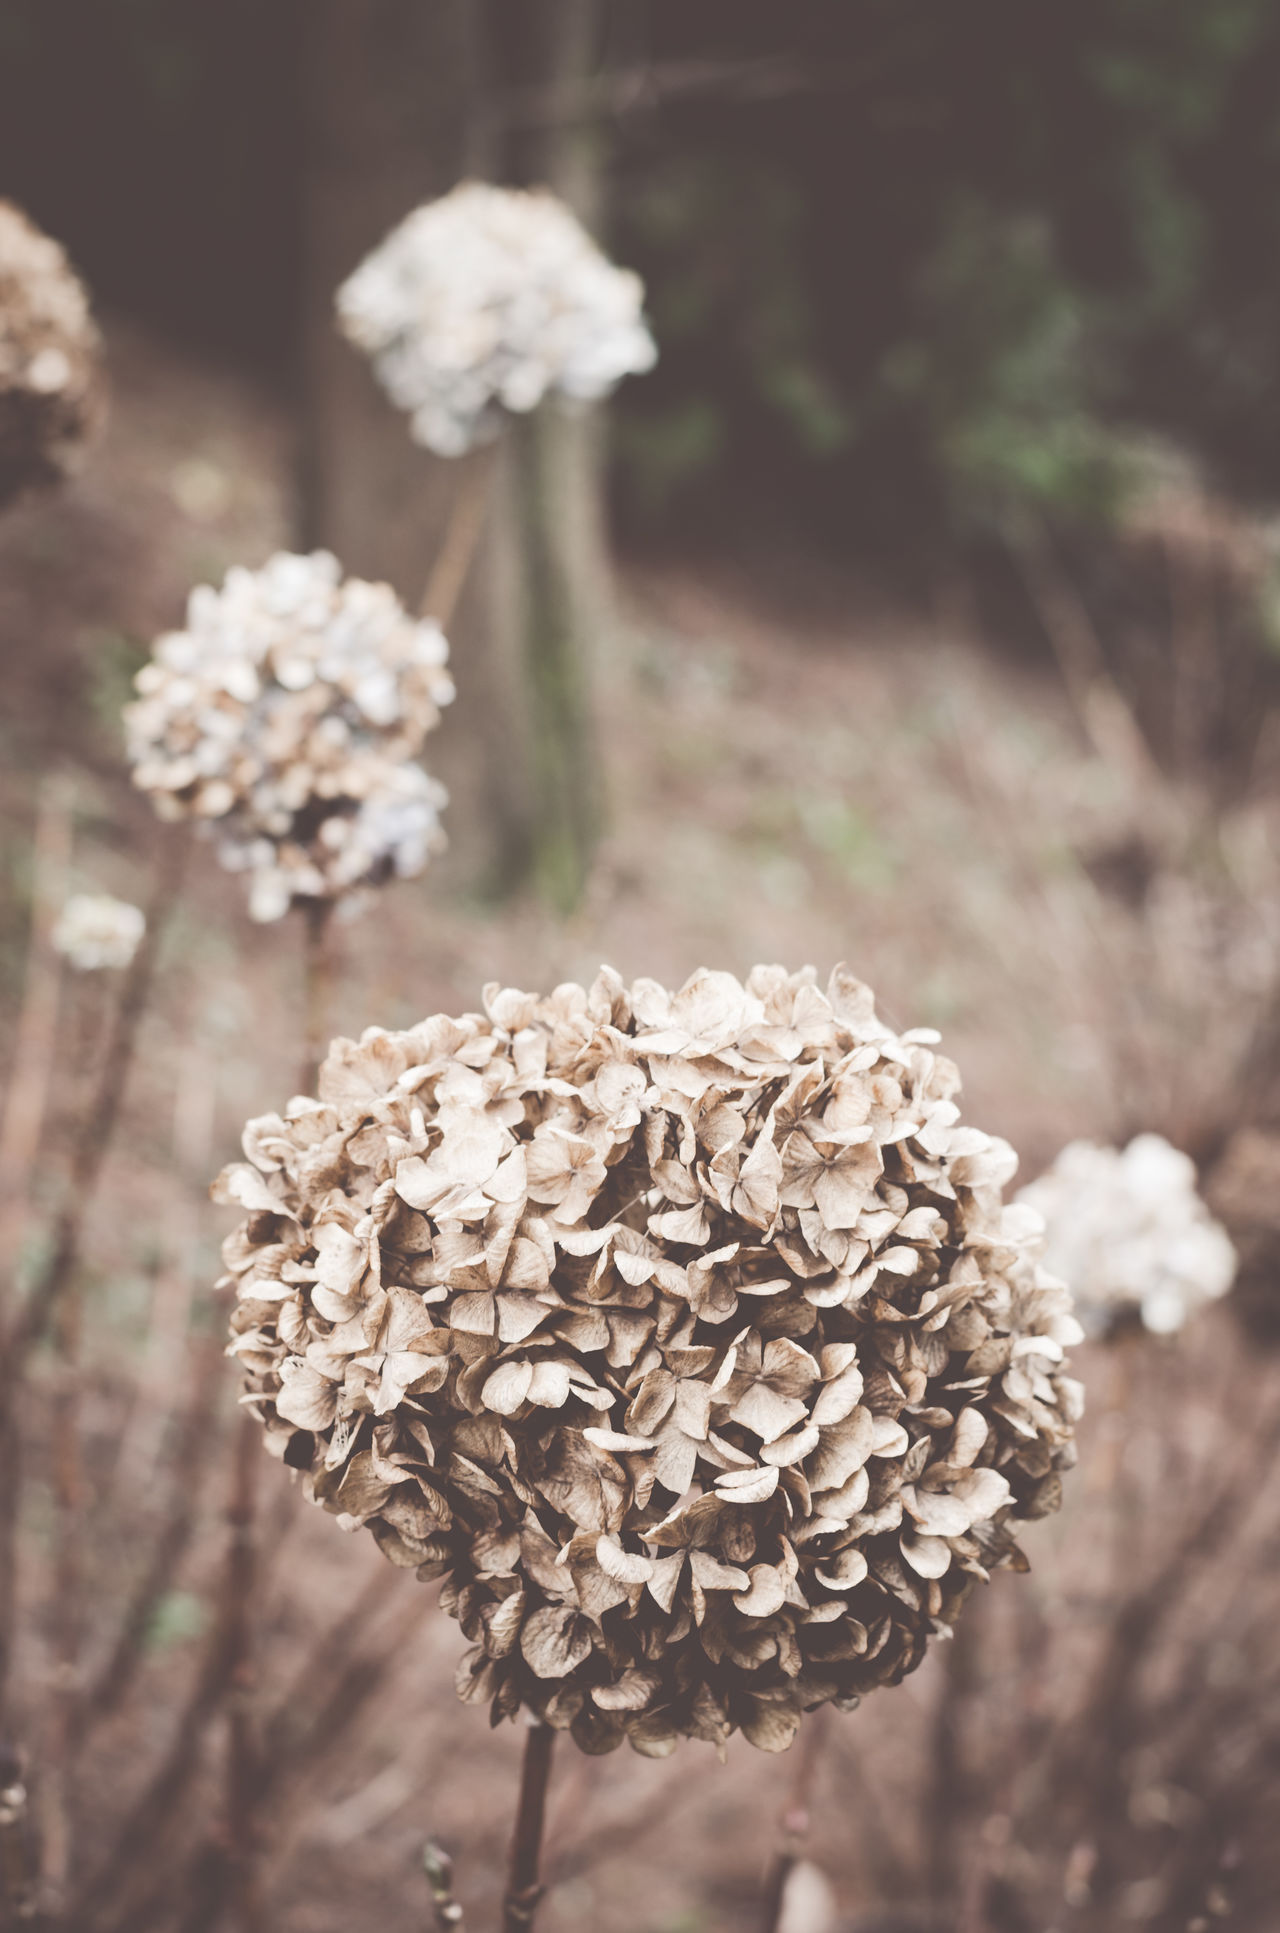 dried hydrangea blossom - winter gardens Abundance Autumn Botany Close-up Dried Flowers Dry Filtered Image Flower Focus On Foreground Fragility Full Frame Growing Hydrangea Macrophylla Hydrangeas Leaf Leaves Nature New Life No People Selective Focus Springtime White Winter Gardens